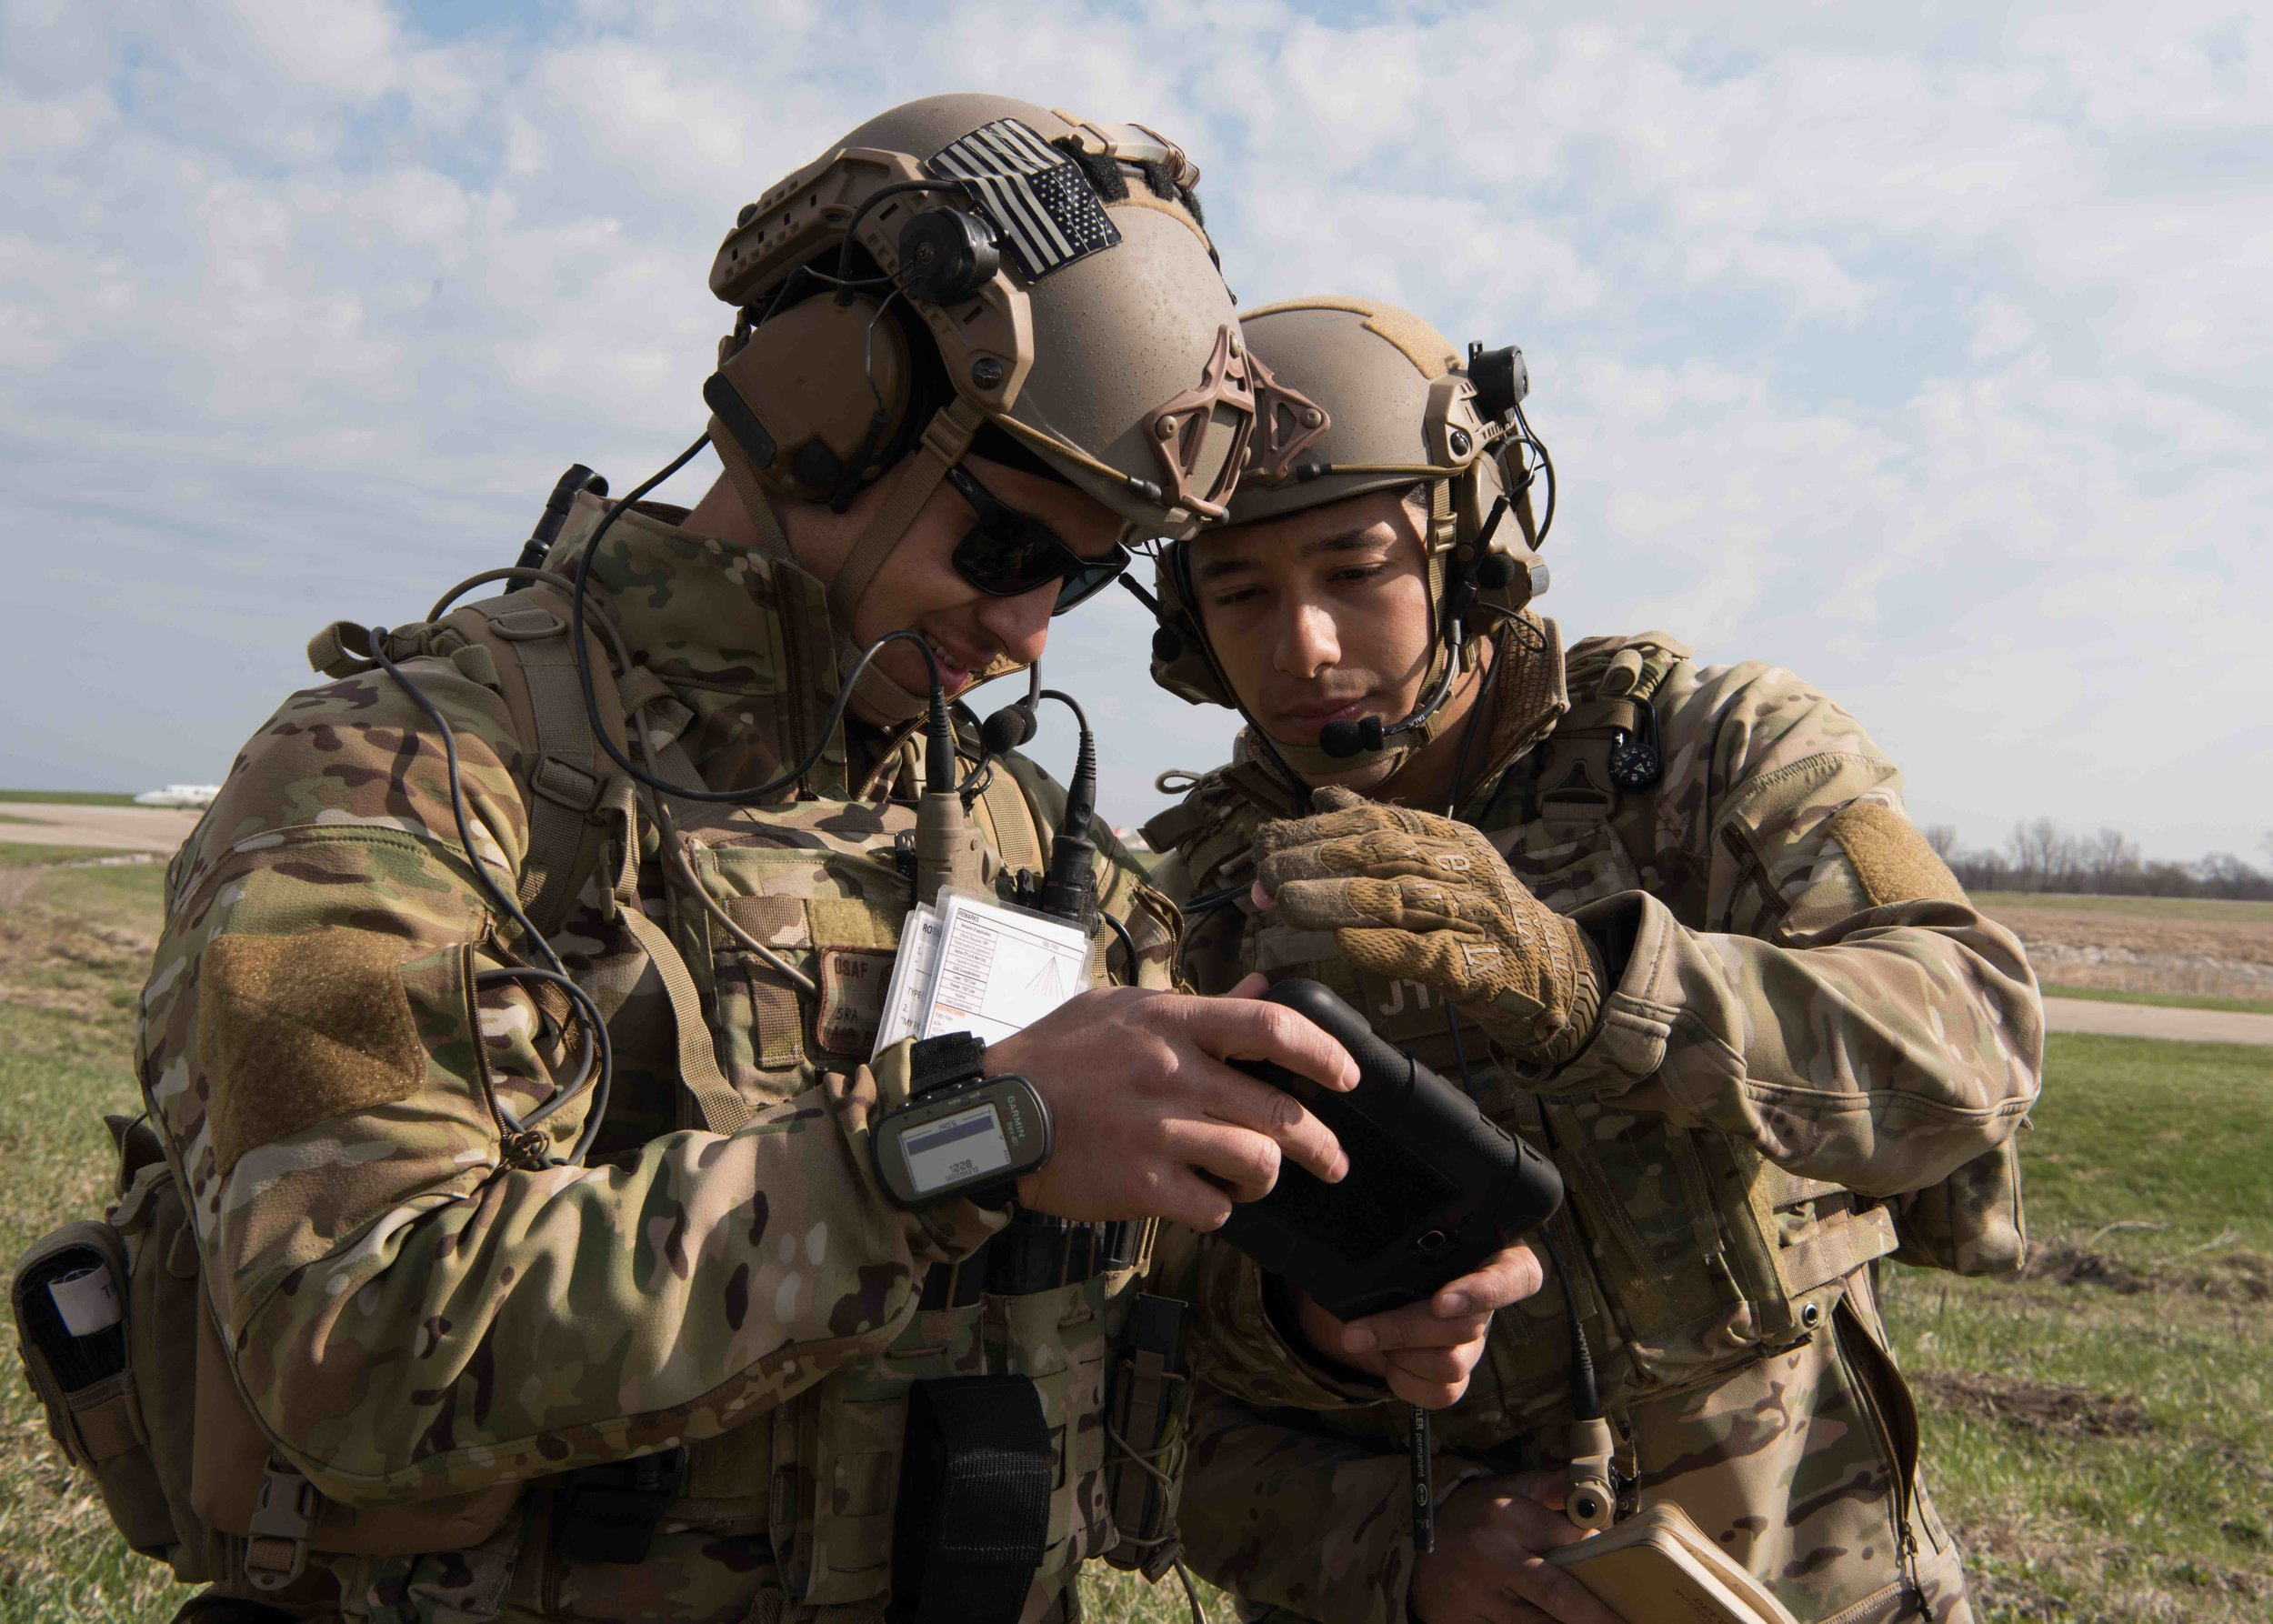 Two U.S. Air Force Joint Tactical Air Controllers (JTAC) with the 7th Air Support Operations Squadron from Fort Bliss, Texas, call-in simulated air strikes during the Reaper Flag exercise on April 2, 2019, in Sedalia, Mo. Using tactical radios and ruggedized tablets, the Airmen are trained and equipped to deploy with land forces, in order to coordinate airspace and missions including Close Air Support (CAS). Photo by Airman Parker J. McCauley.